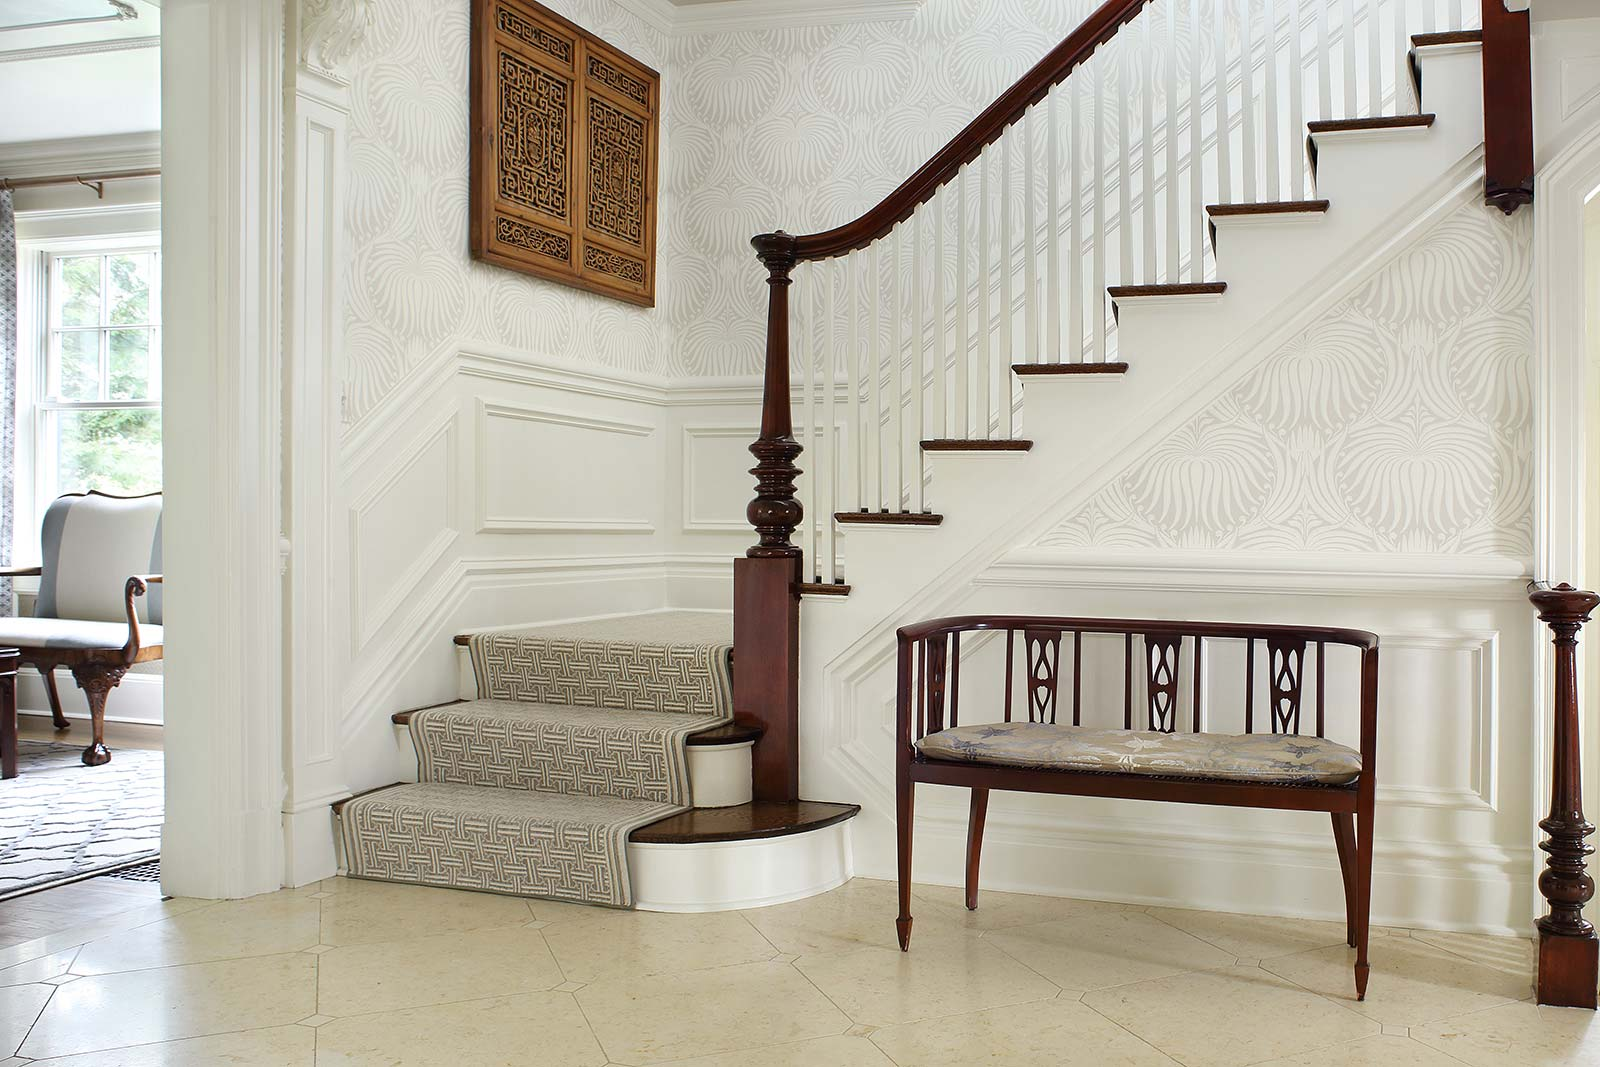 Foyer Seating Nj : Summit nj iii valerie grant interiors